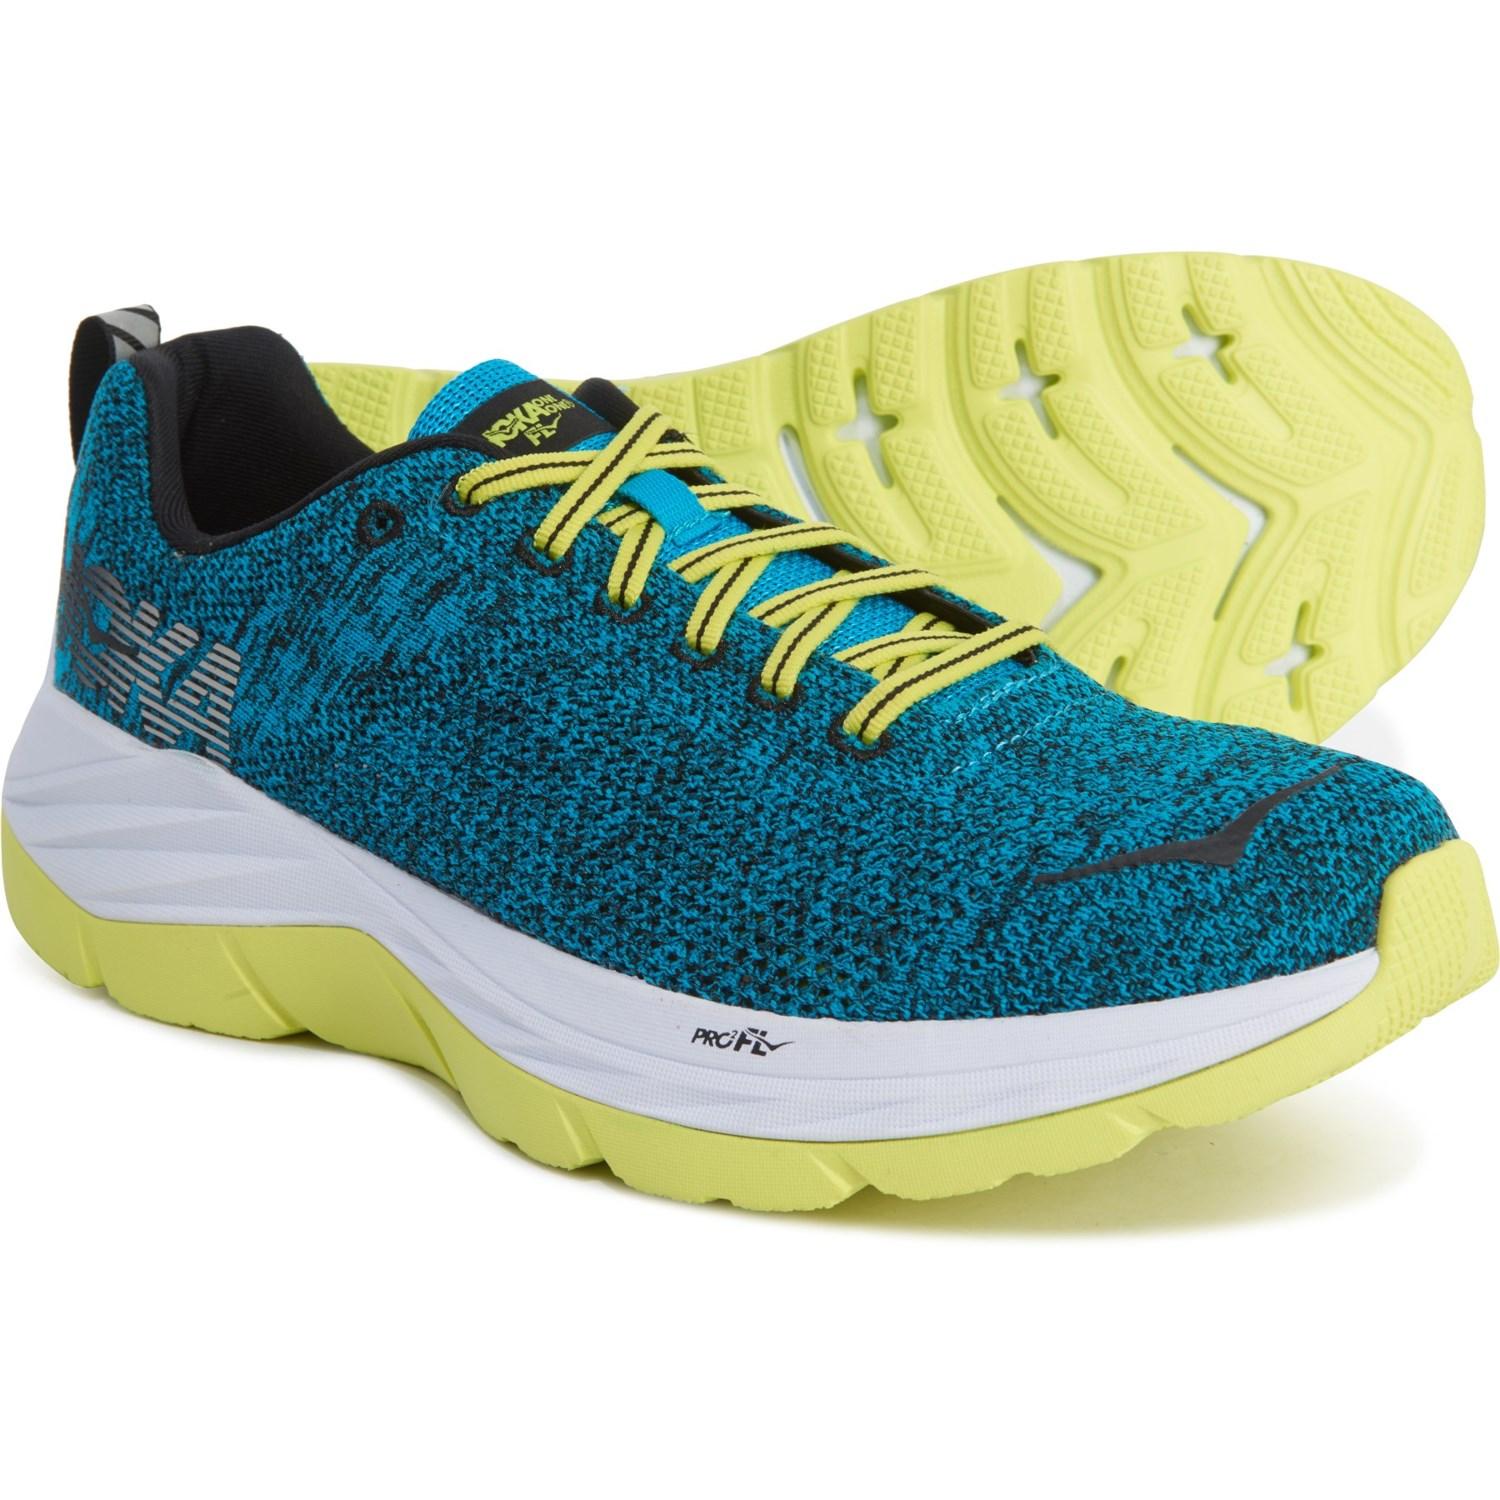 ff5601c7601f6 Hoka One One Mach Running Shoes (For Men) - Save 30%